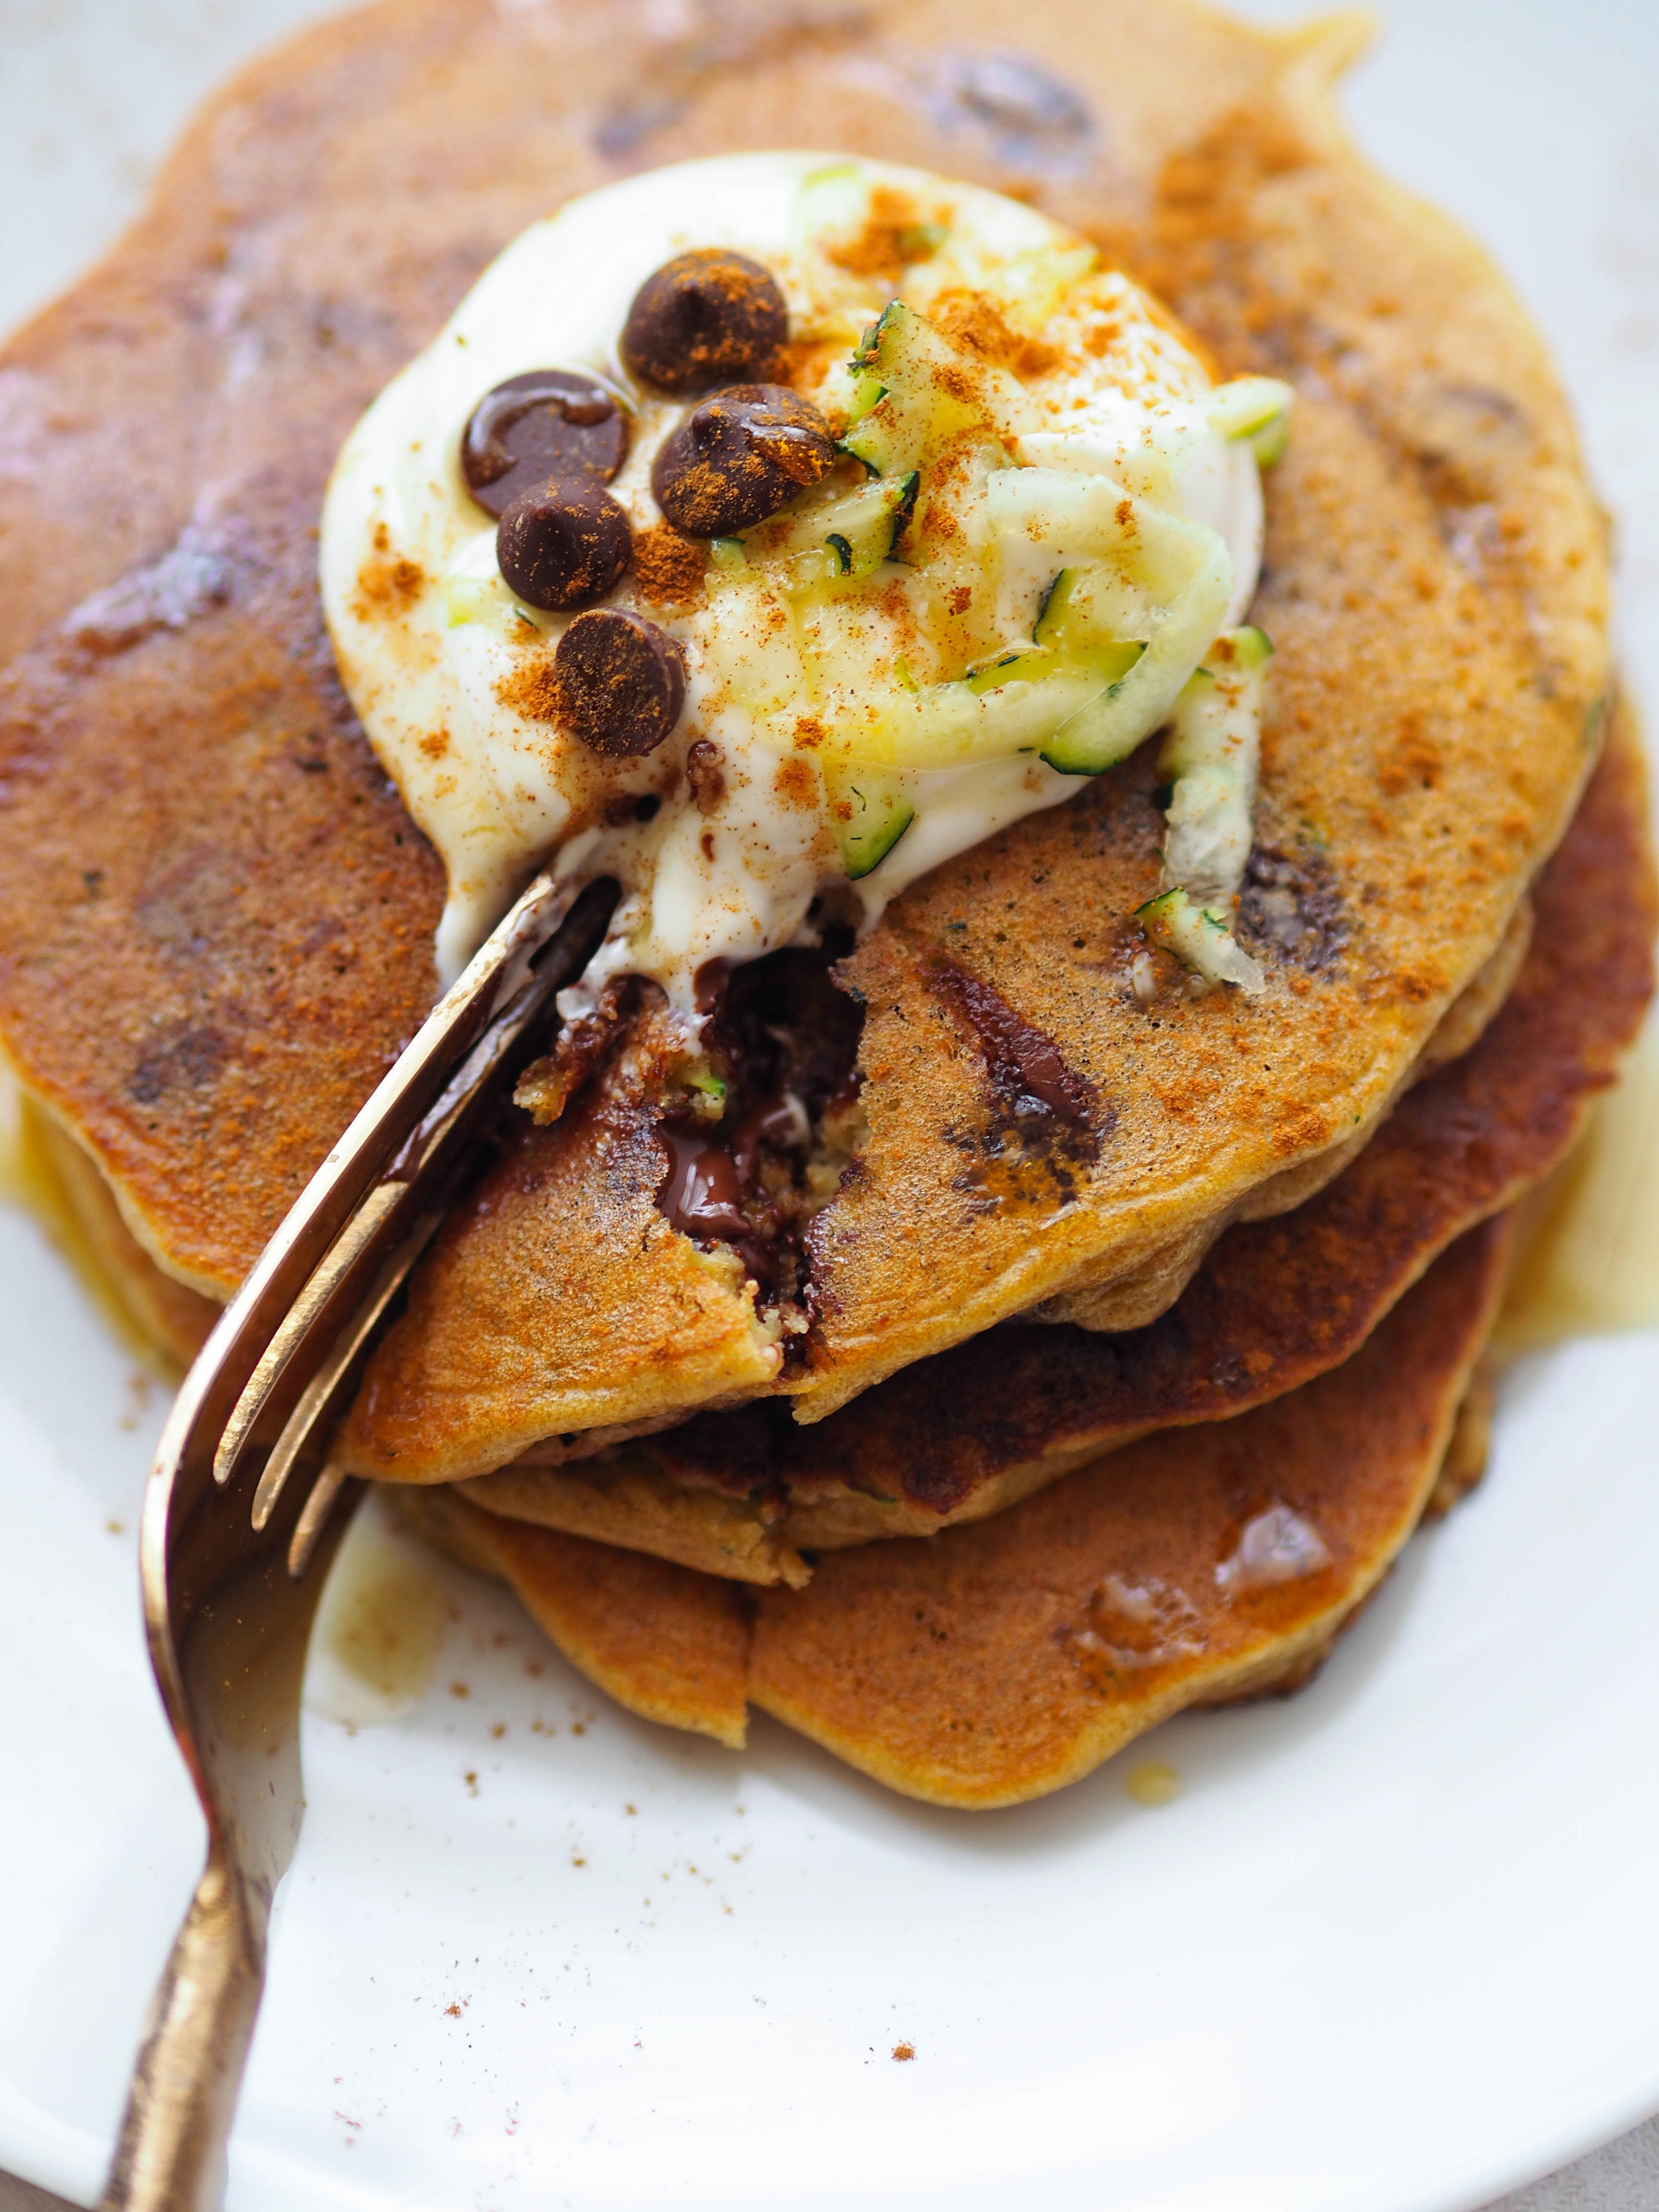 Zucchini bread in pancake form, plus dark chocolate chips! Make these almond flour zucchini bread chocolate chip pancakes, topped with a maple Greek yogurt topping! #breakfast #pancake #chocolate #glutenfree #grainfree #brunch #healthyrecipe